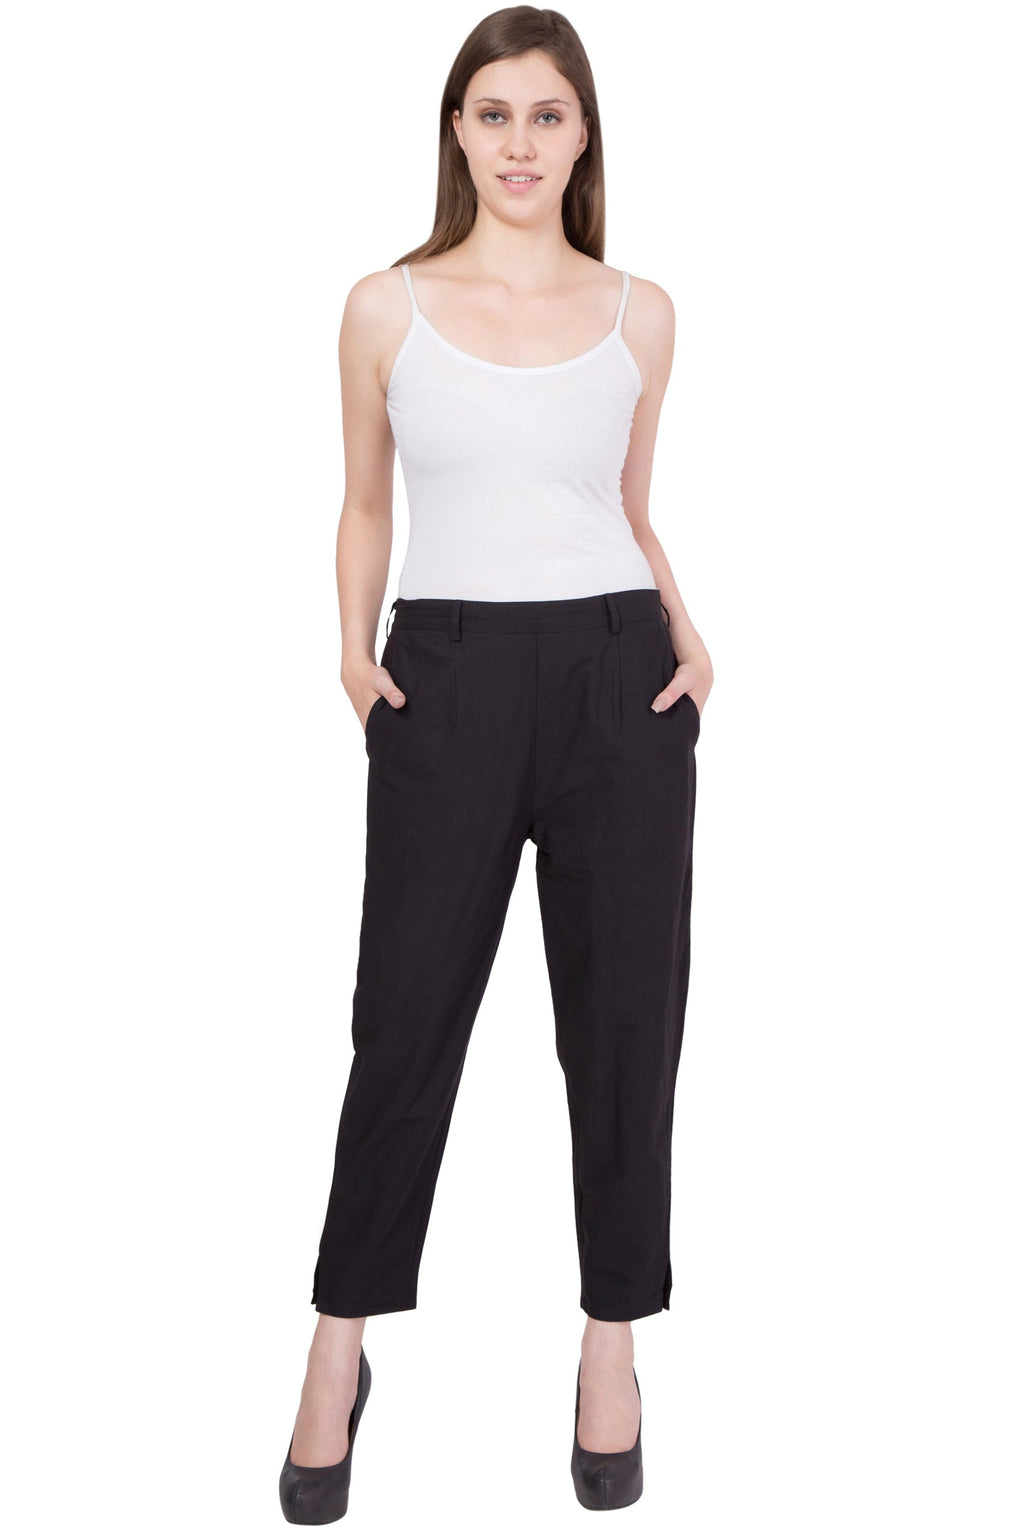 Cotton Pant  in Black Color  WMB000013